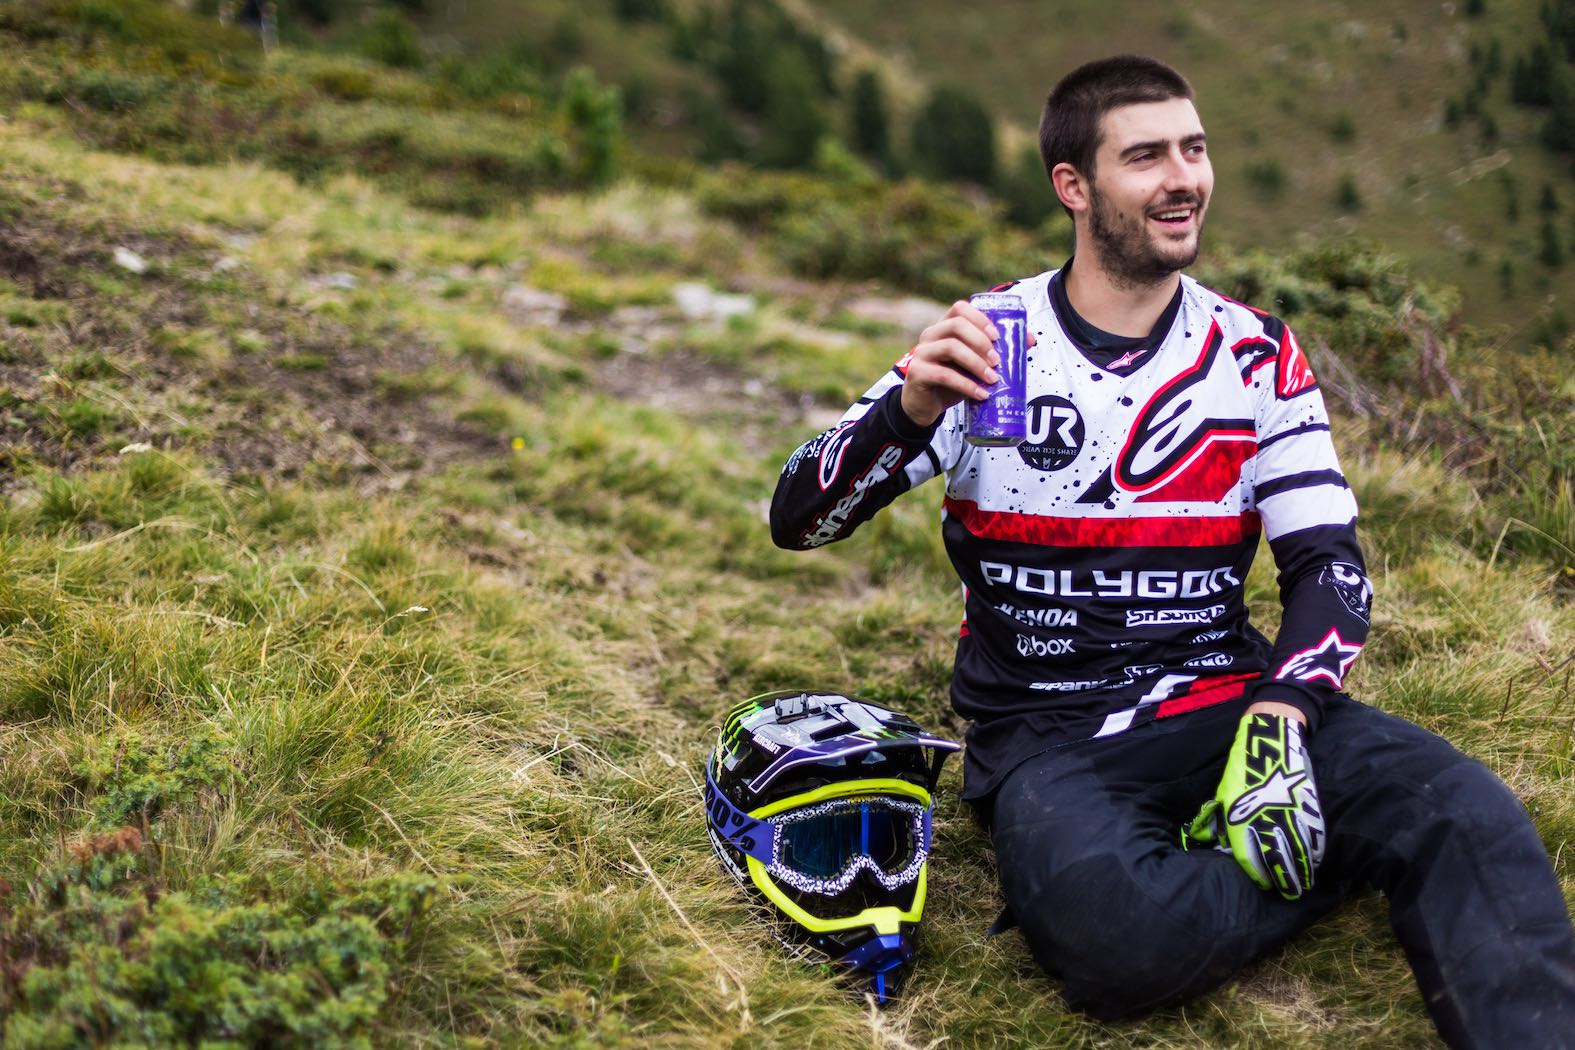 Cheers on the Nine Knights Downhill Bike category win Sam Reynolds